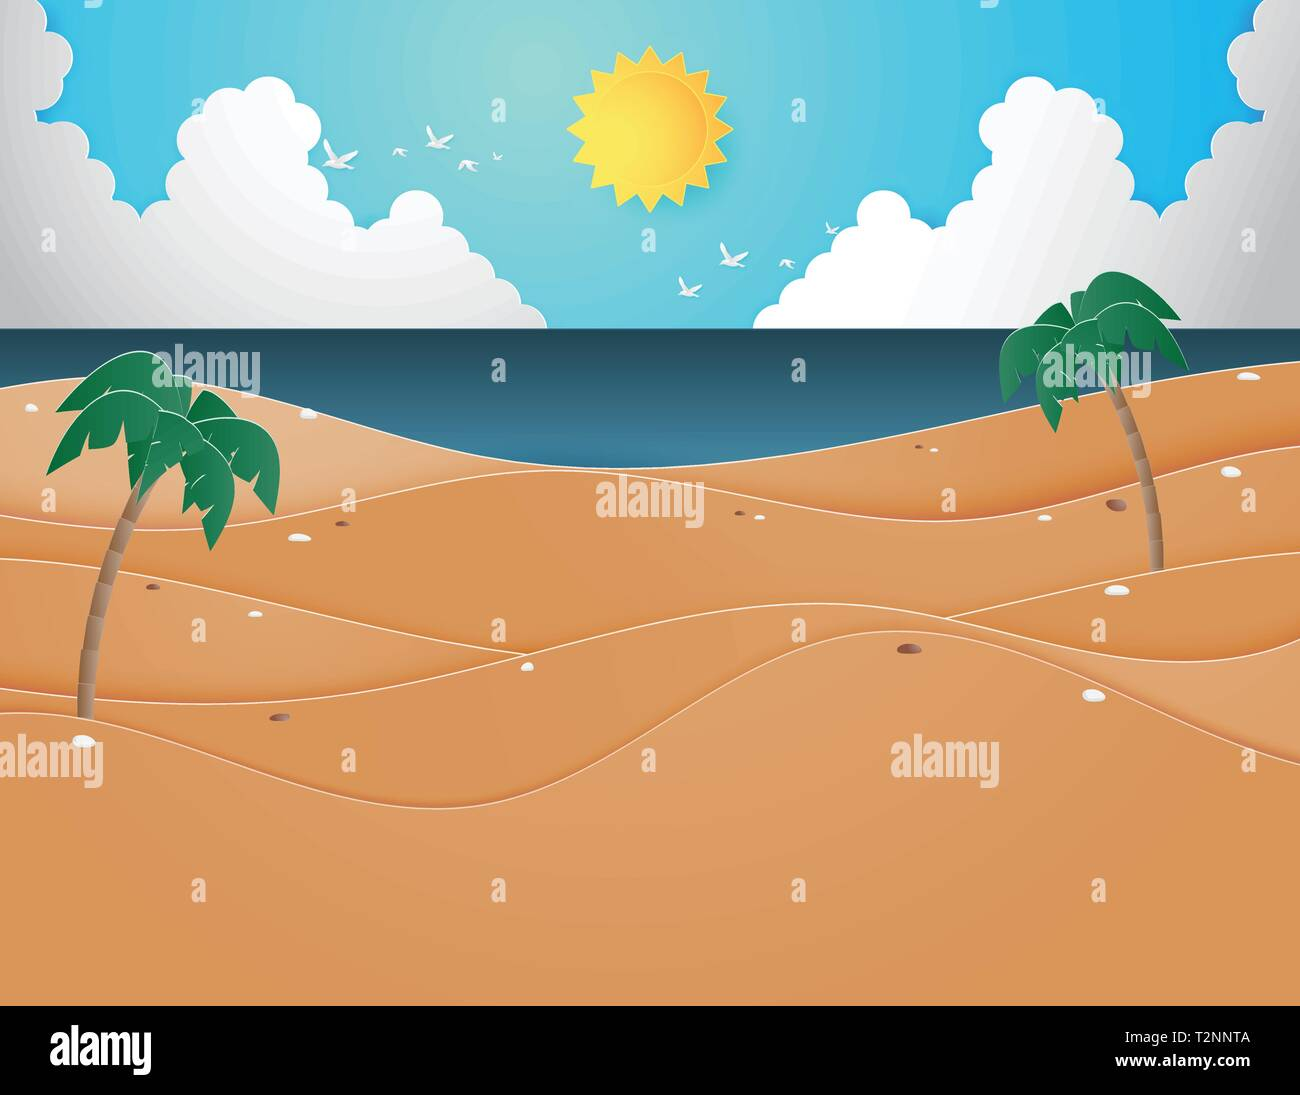 Illustration of Summer beach and sea with palm trees on the beach. Paper art and digital craft paper cut style for wallpaper, poster, banner template, Stock Vector